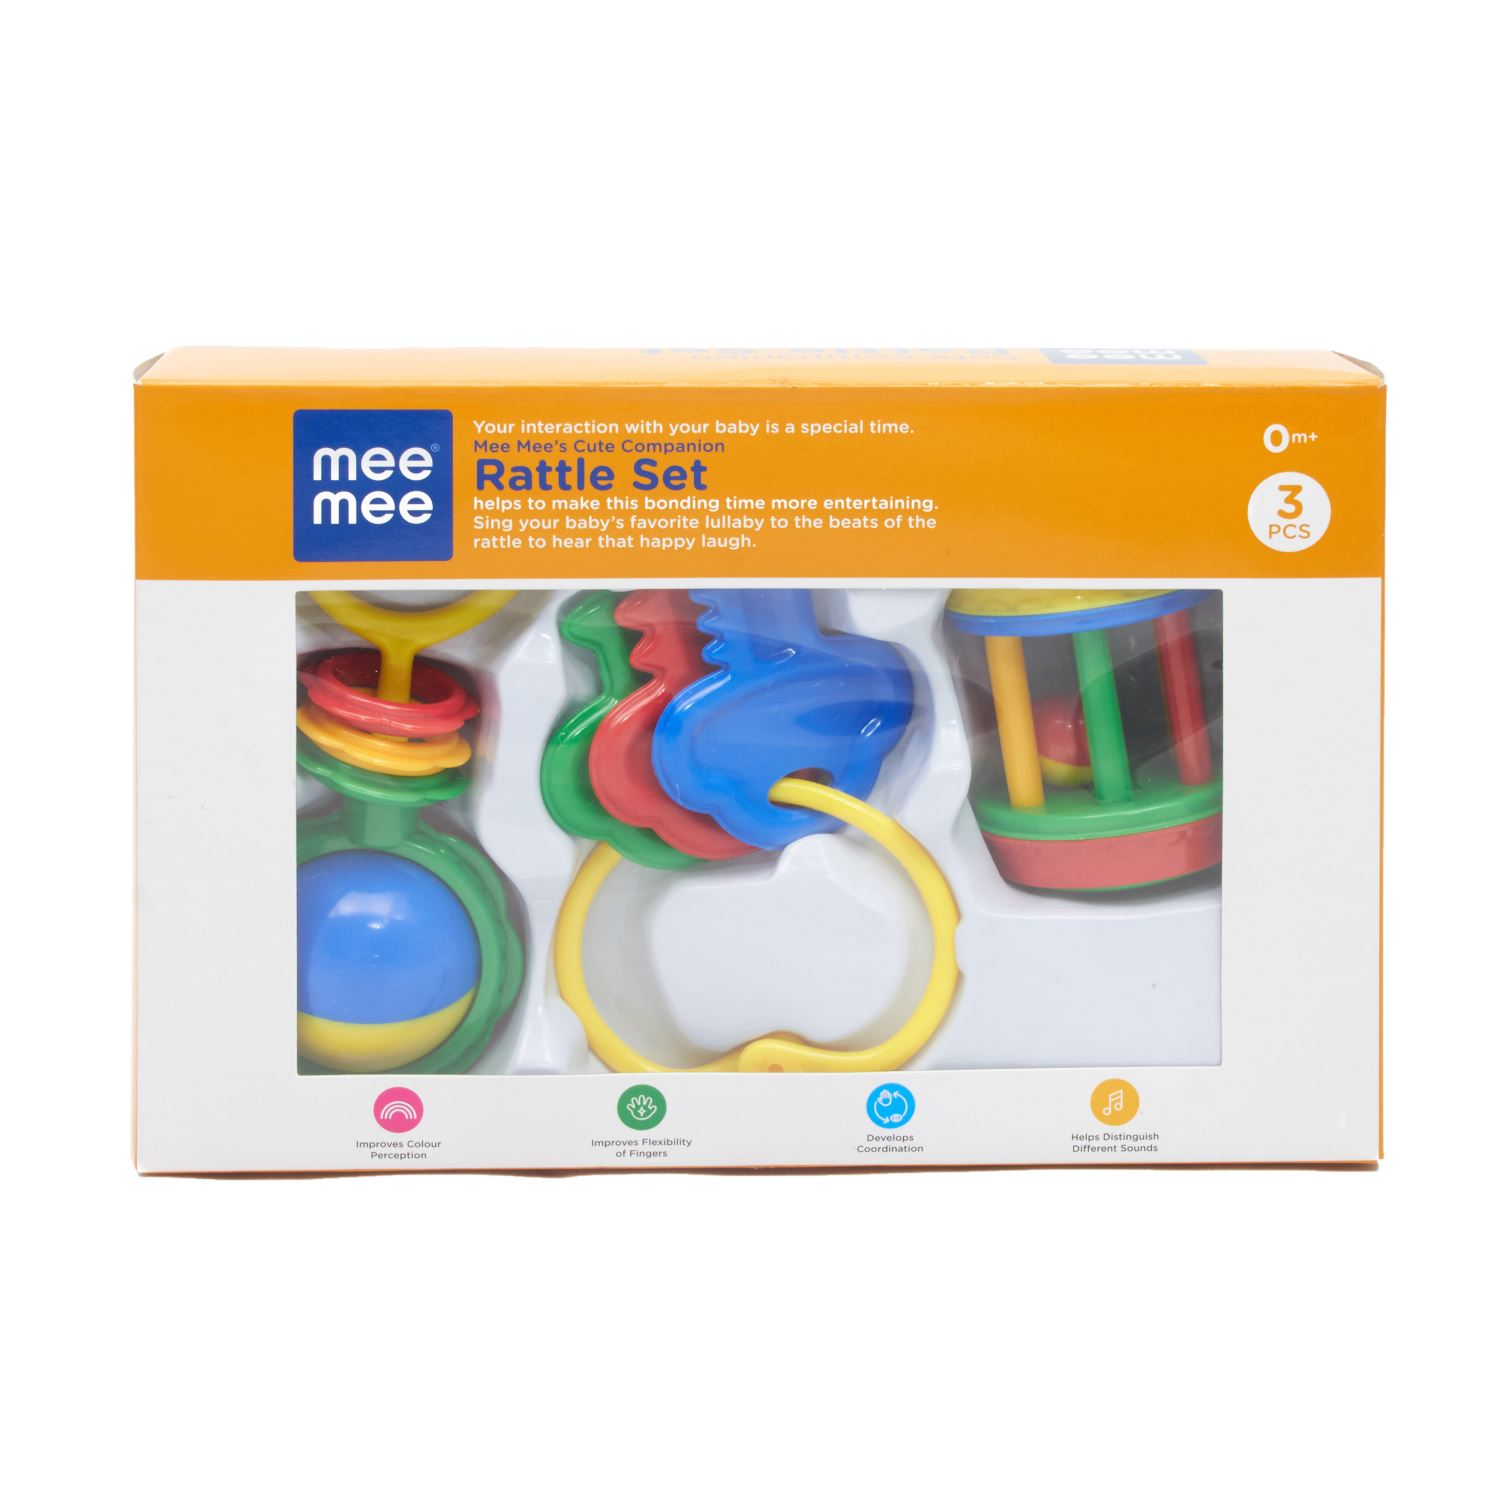 Mee Mee Mm 301 Infant Rattle Set